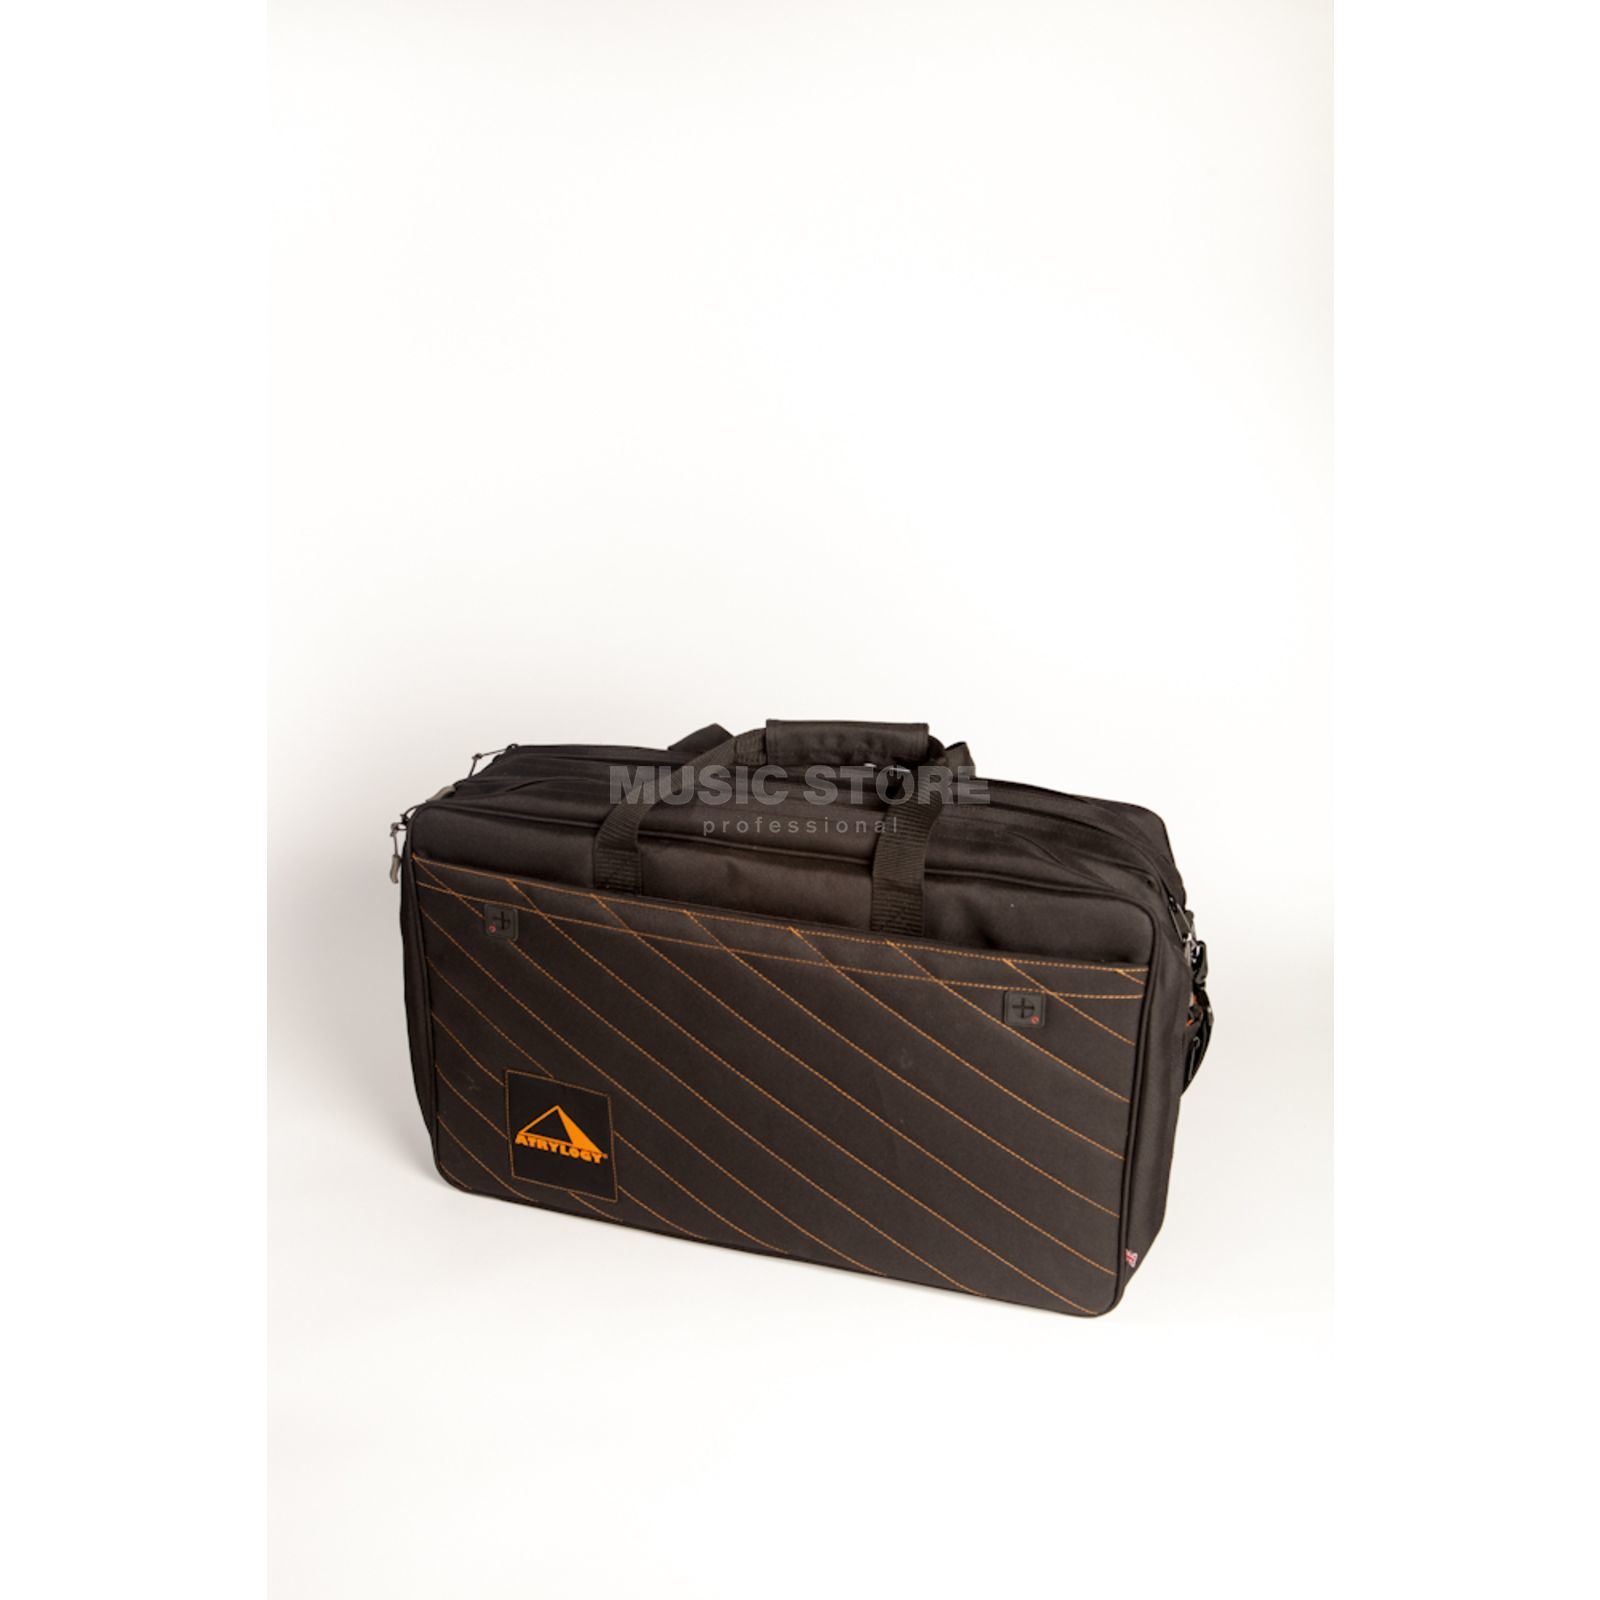 Atrylogy ControllerCase Large Black  Product Image